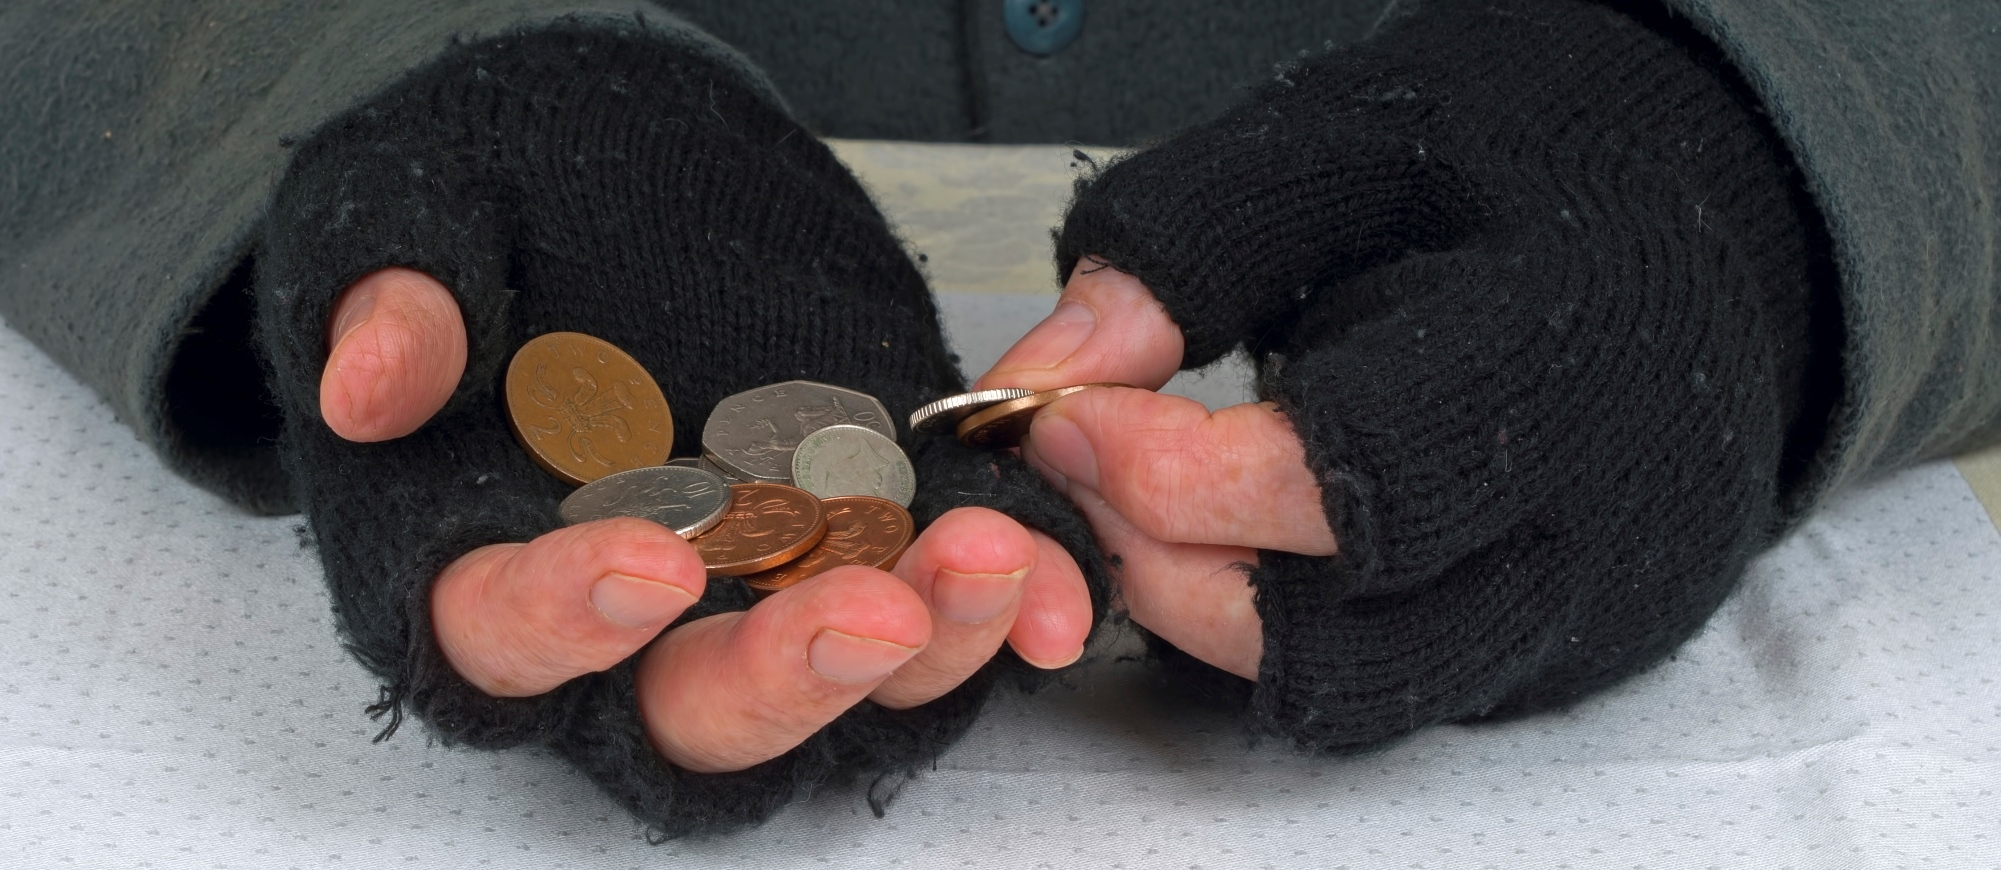 Poverty,hardship - counting the pennies UK